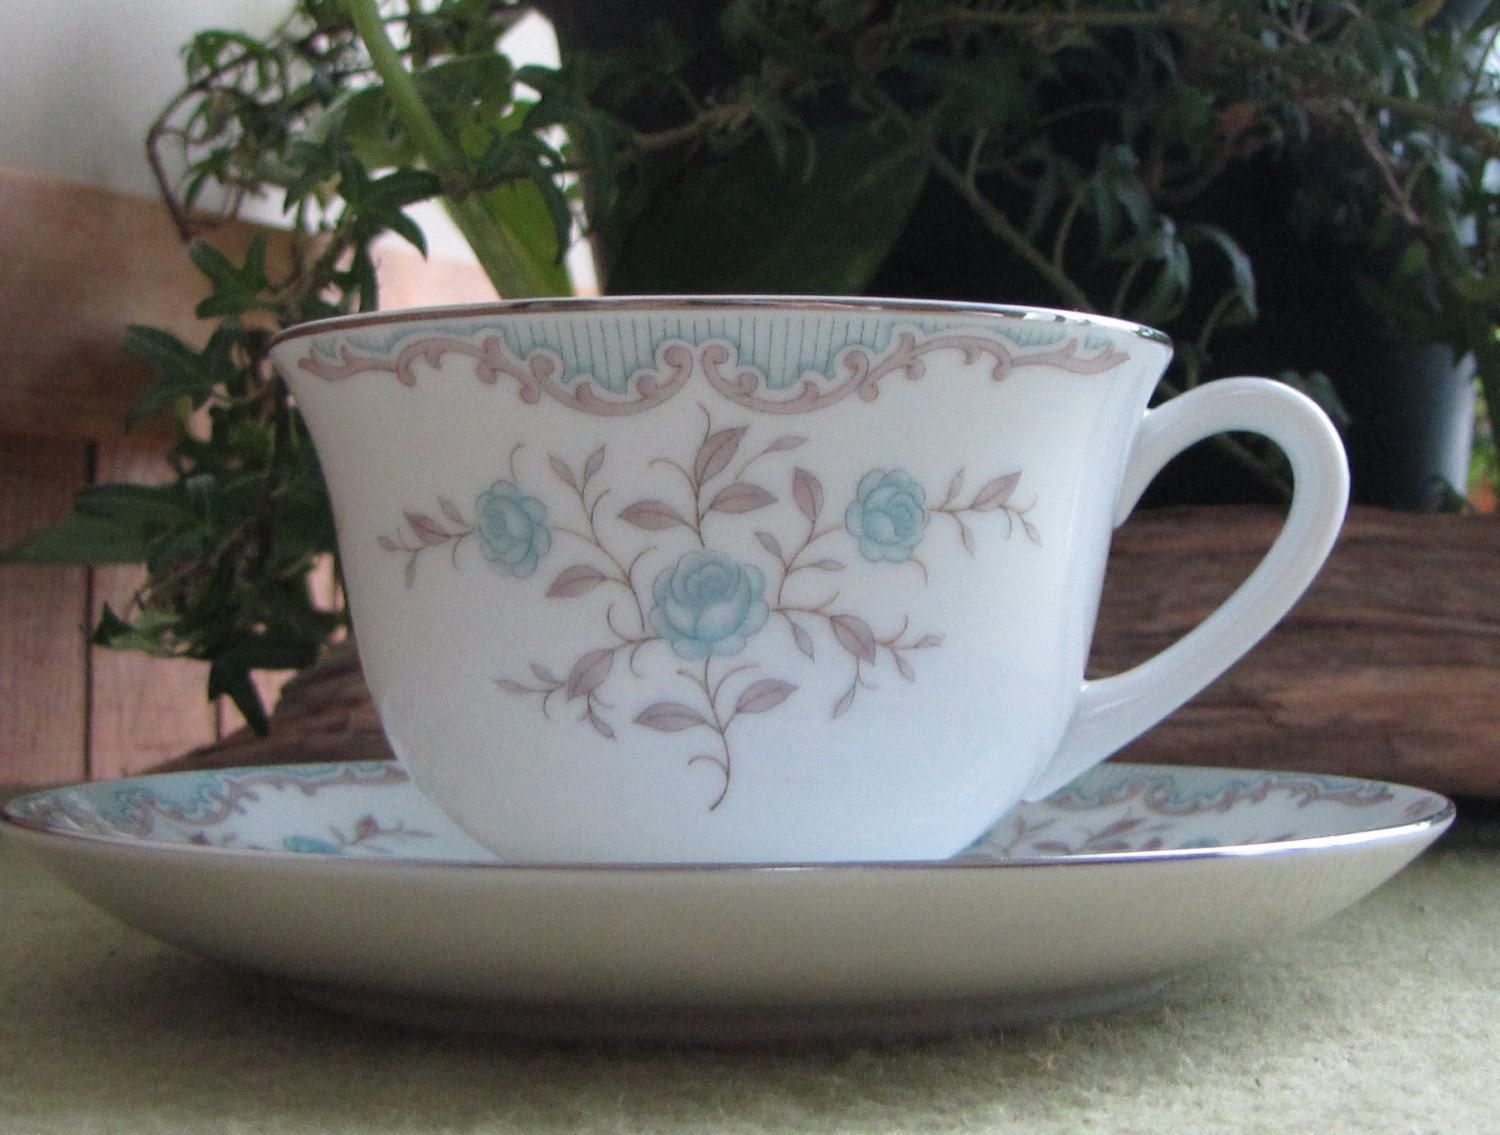 & Phoebe by Narumi Vintage Tea Cup and Saucer Dinnerware and Replacements